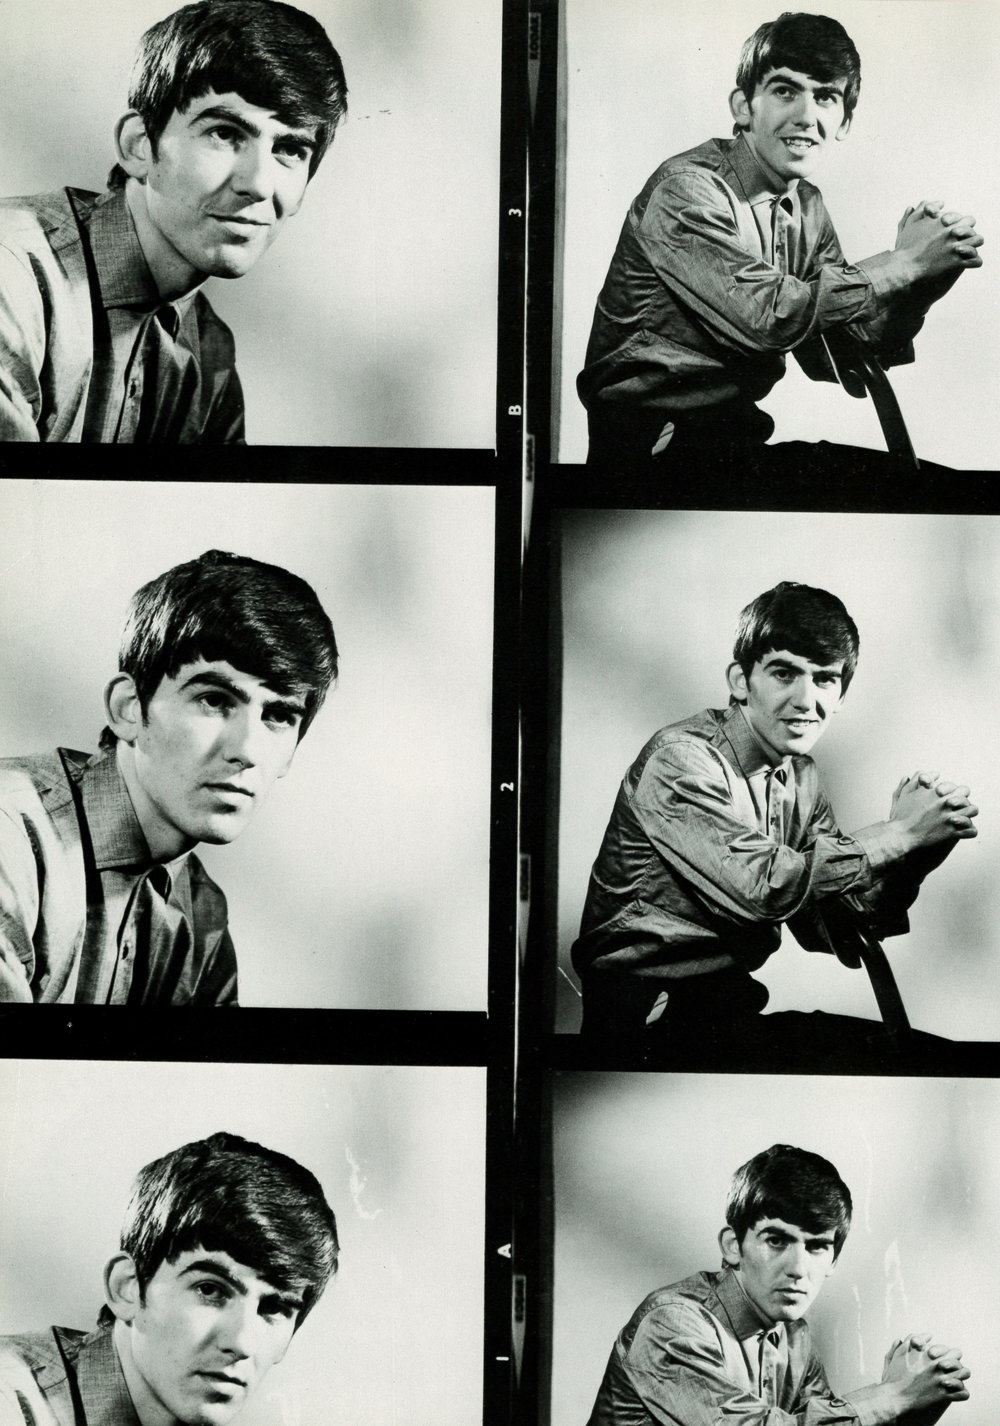 George Harrison 1963 - photos by Dezo Hoffman.